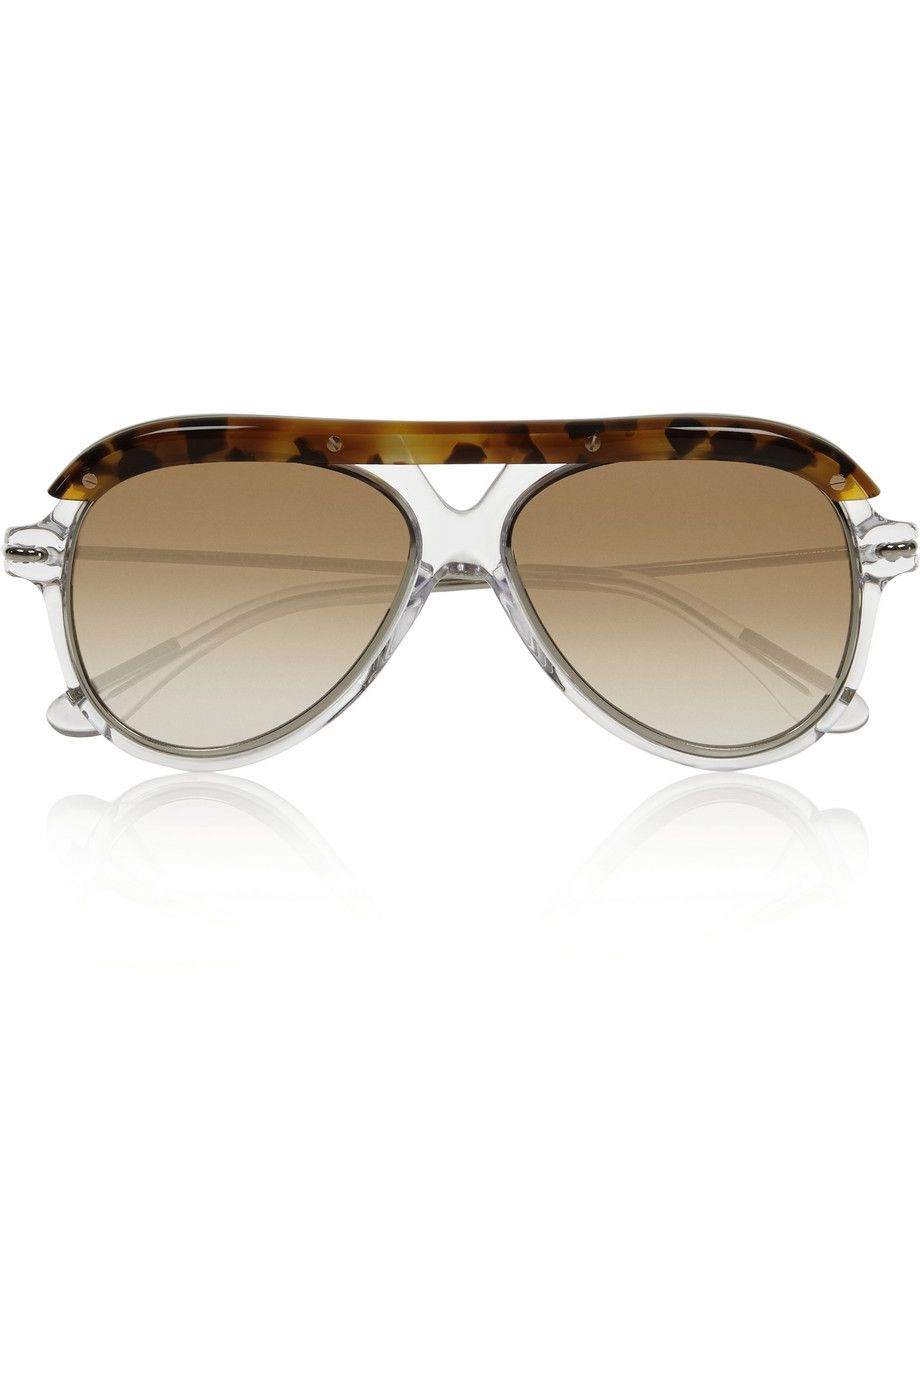 Roland Mouret - Hudson aviator-style acetate and metal sunglasses